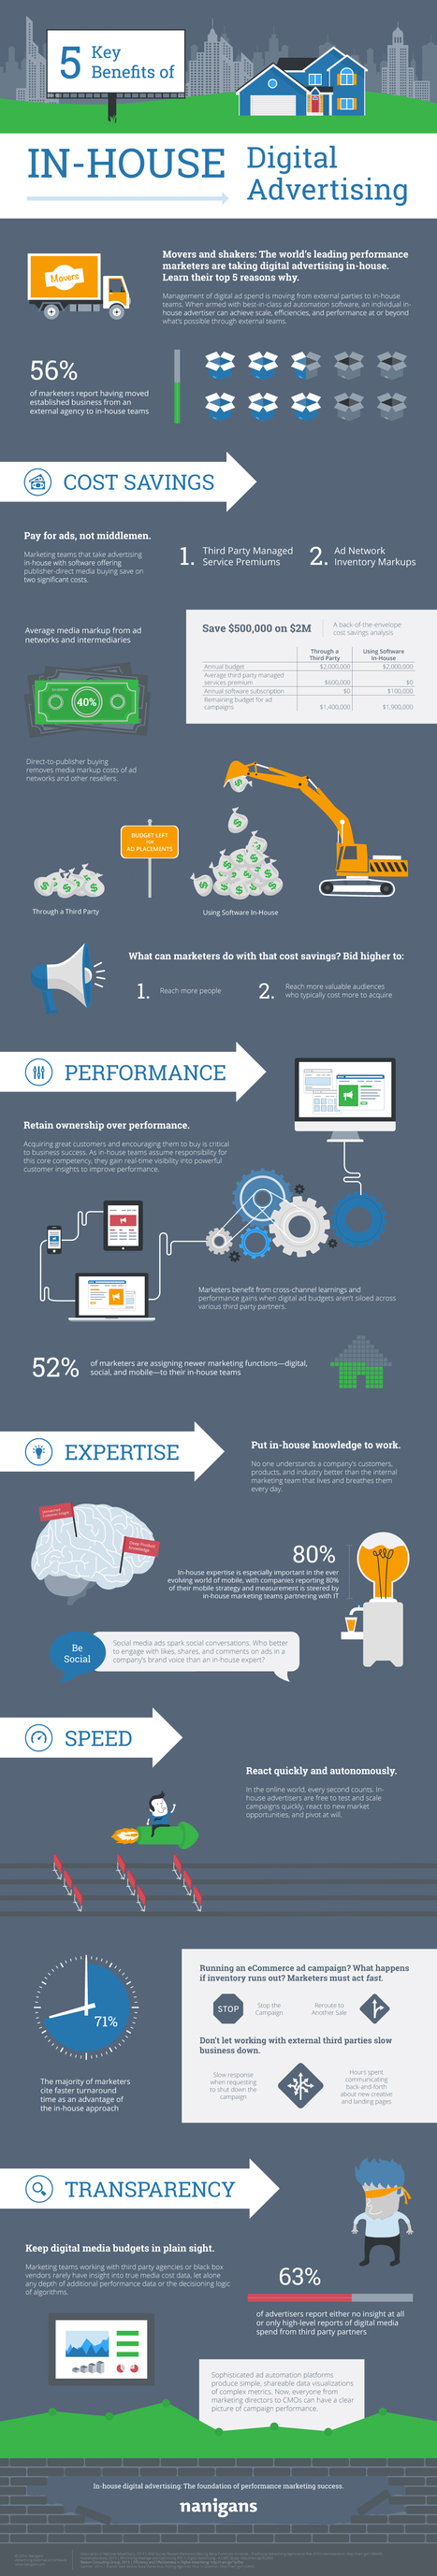 Benefits of In-House Digital Advertising | Social Media Today | Integrated Brand Communications | Scoop.it